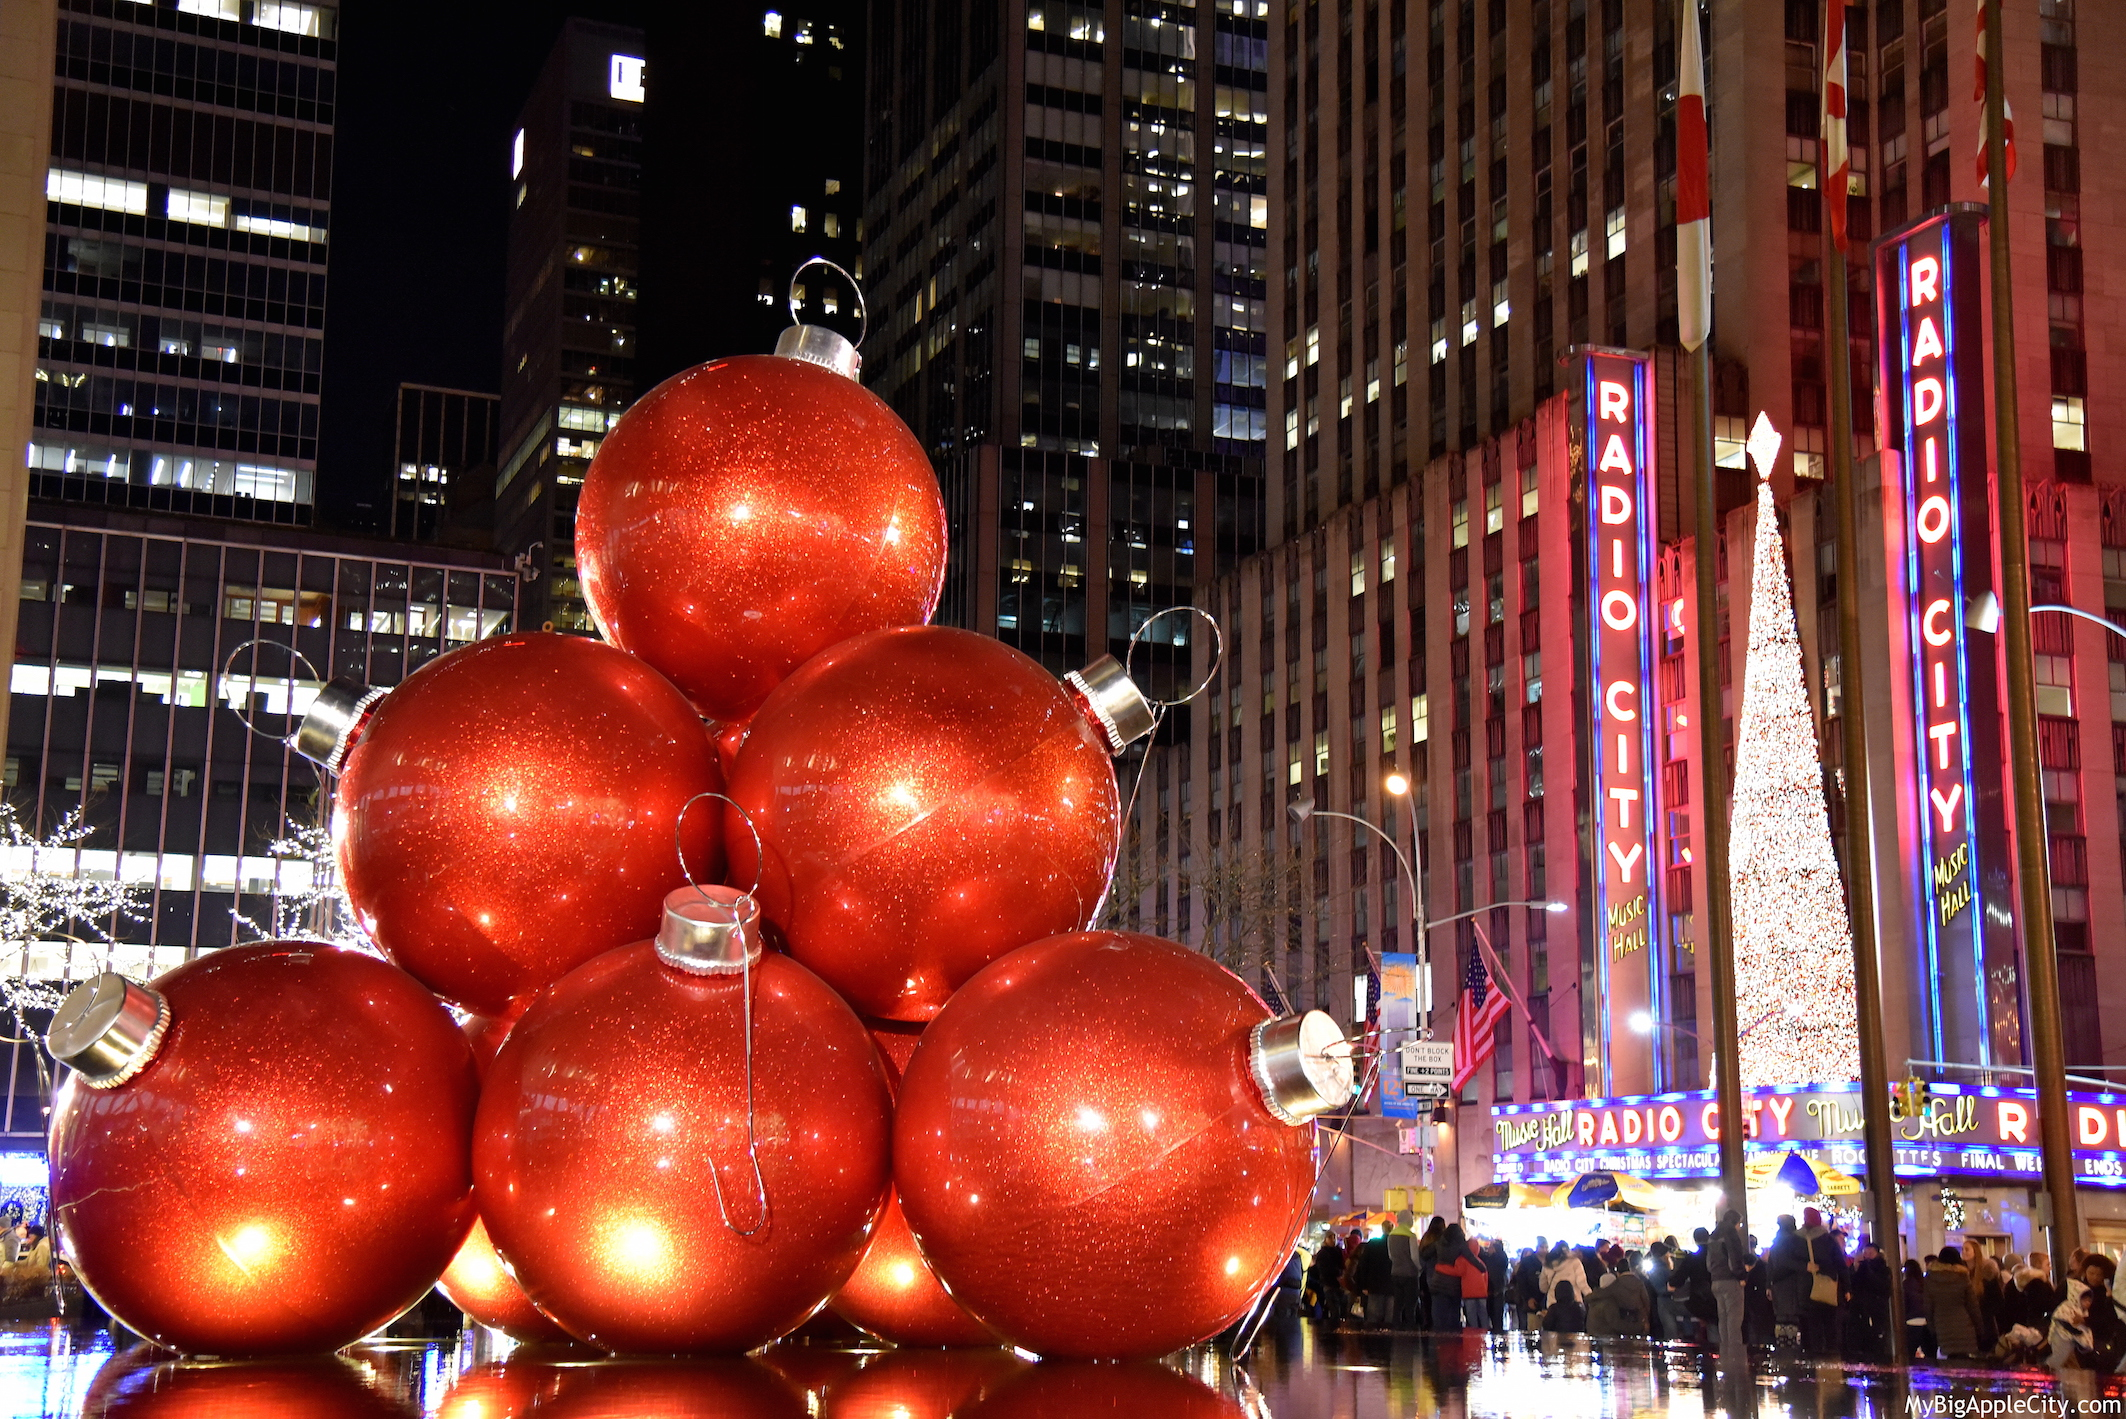 #BF390C Les Décorations De Noël à New York  5549 decorations noel new york 2126x1419 px @ aertt.com